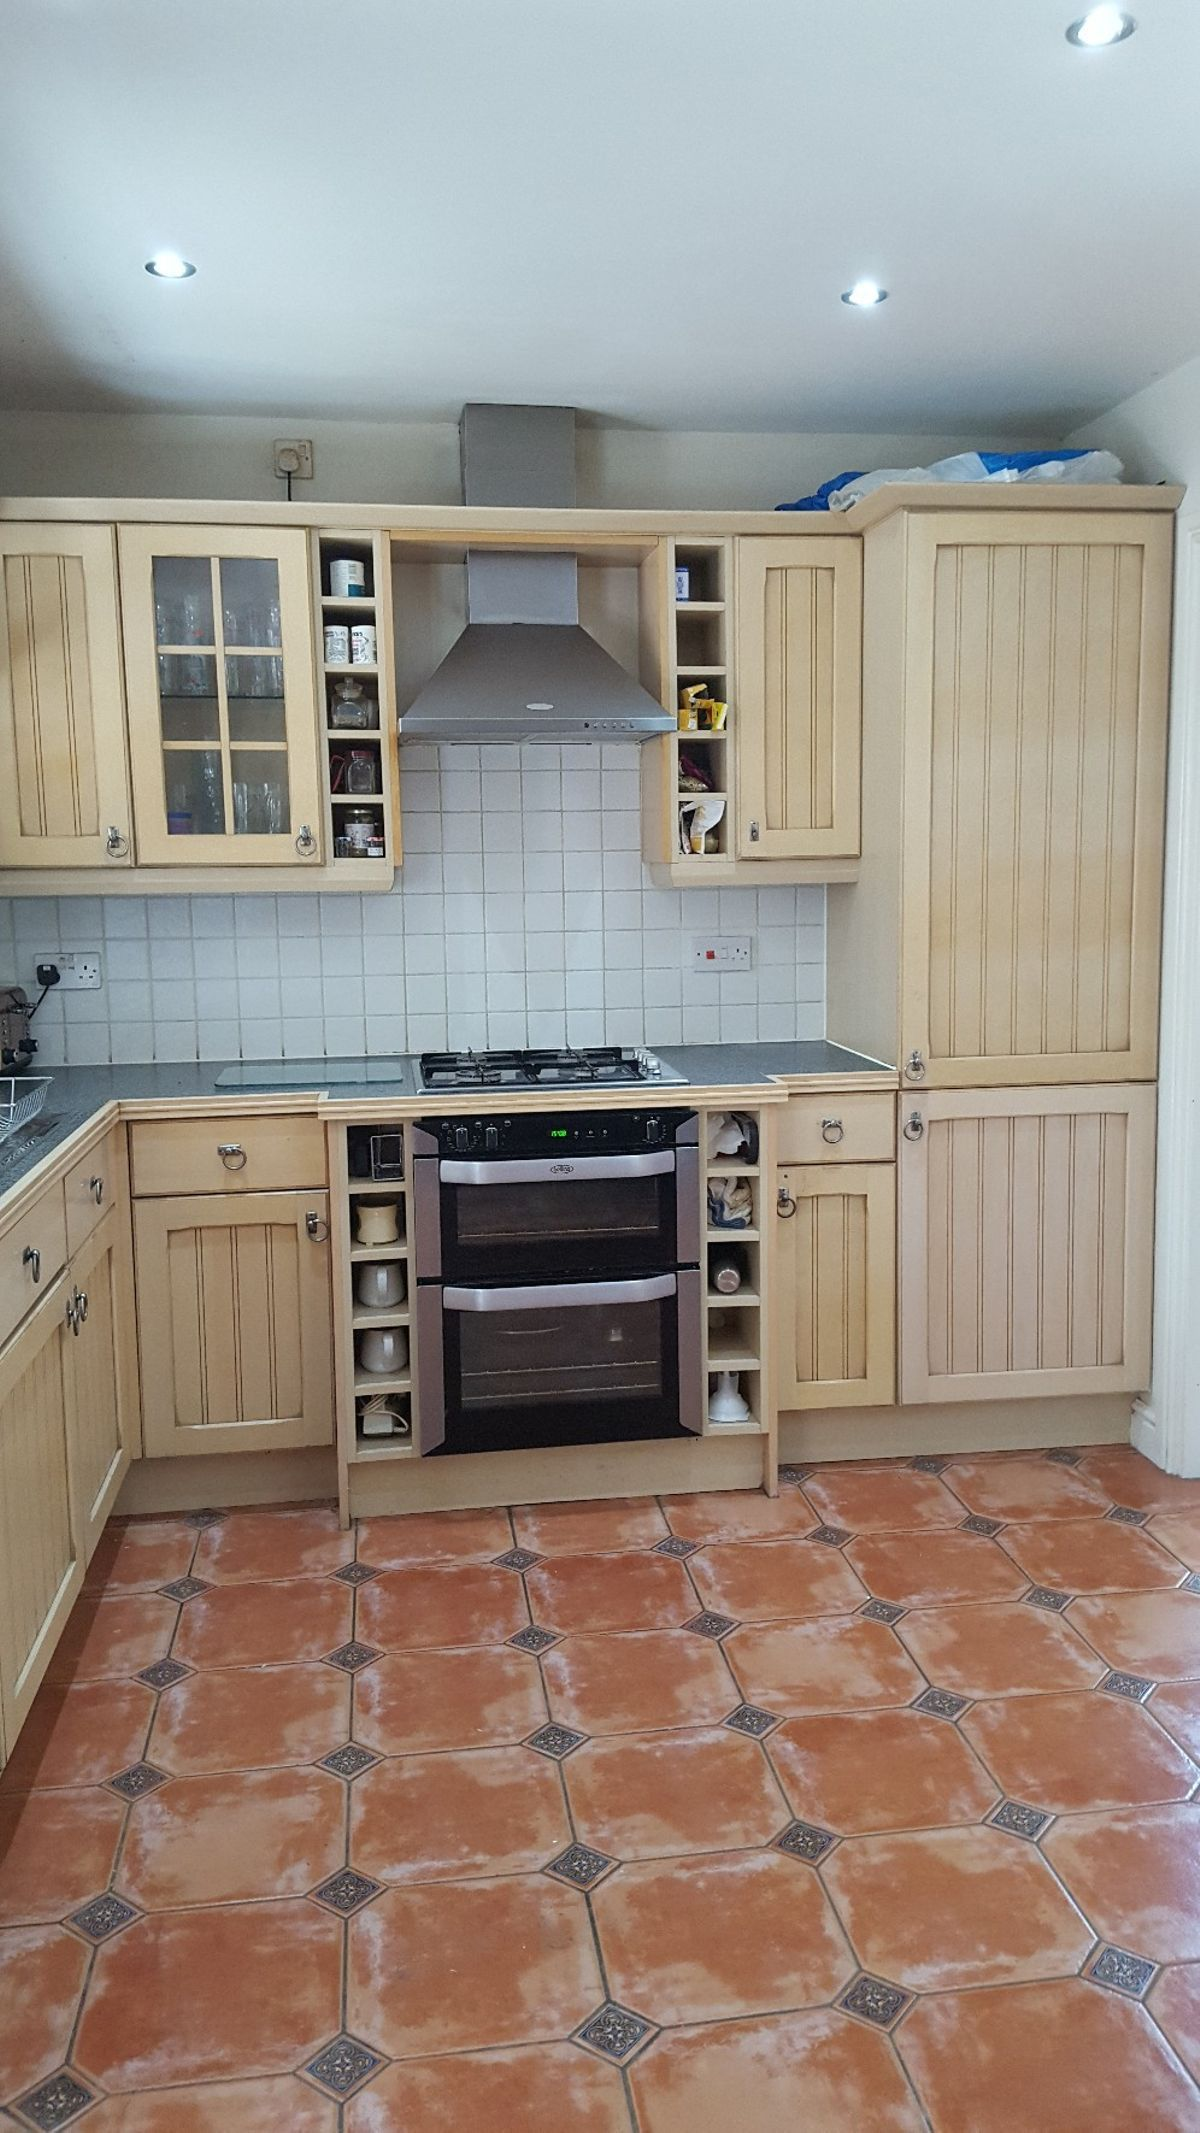 Used High End Kitchen Cabinets For Sale 2021 In 2020 Kitchen Cabinets For Sale Cabinets For Sale High End Kitchen Cabinets